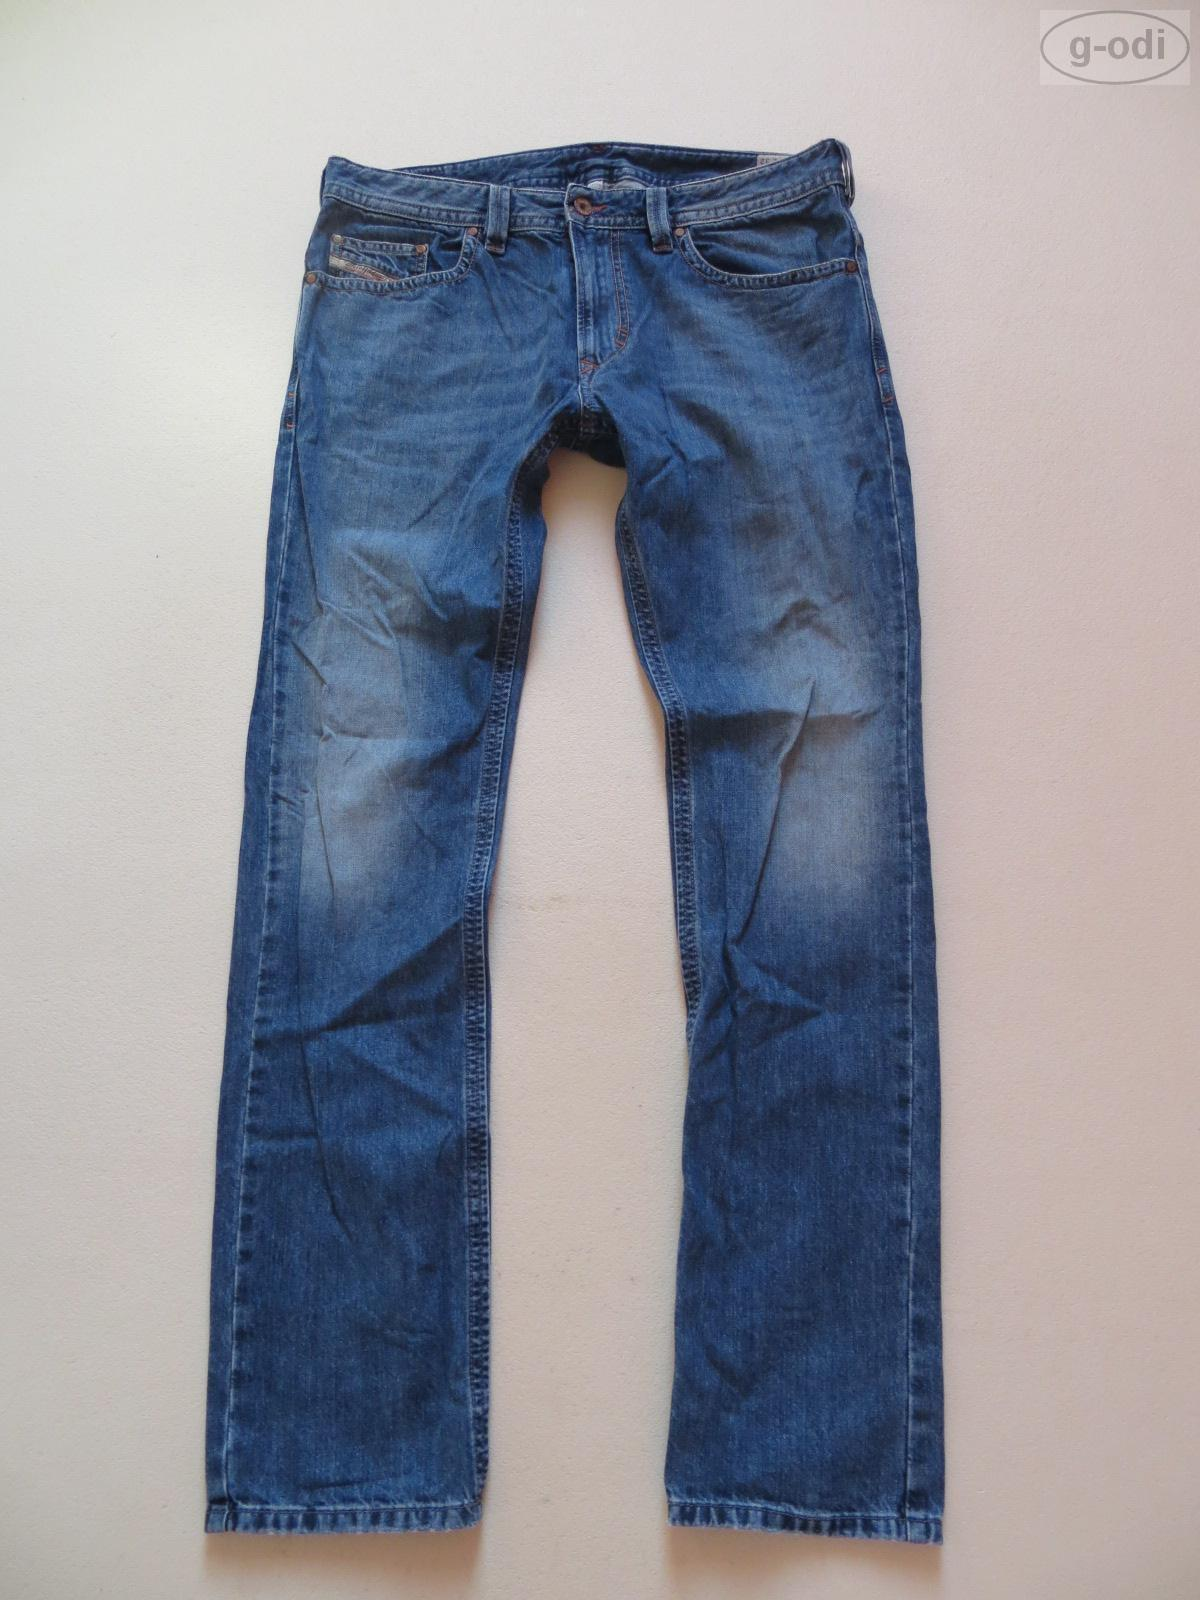 Diesel THAVAR Jeans Hose SLIM - SKINNY wash 0RML9 W 34  L 32 Faded Denim TOP